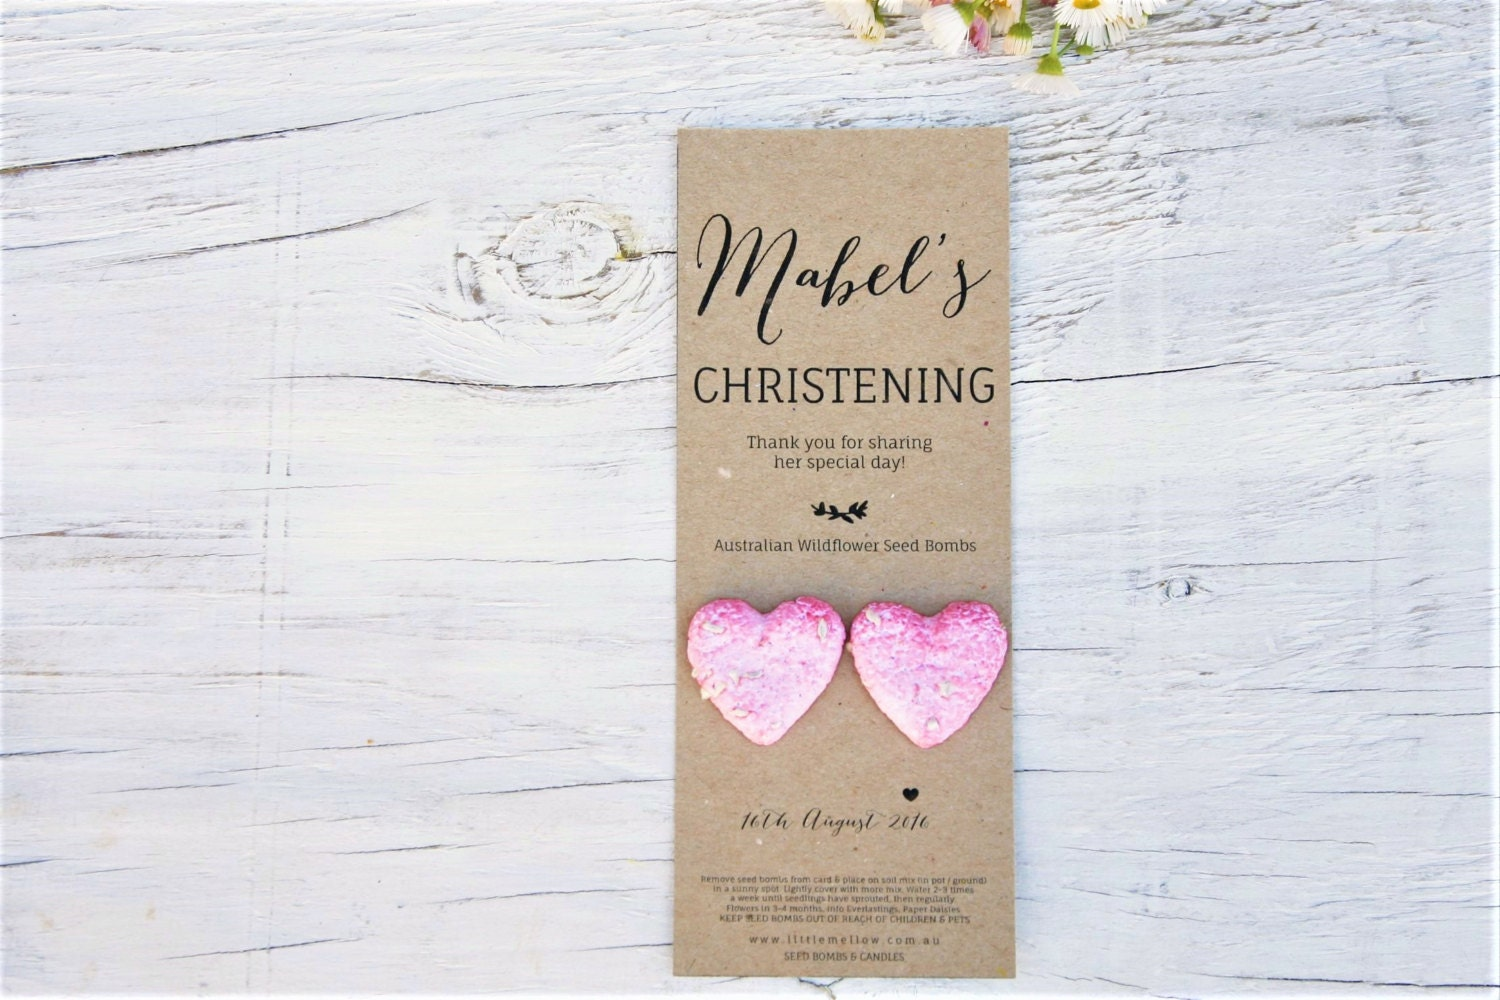 Christening Favours Australian Native Wildflower Seed Bombs